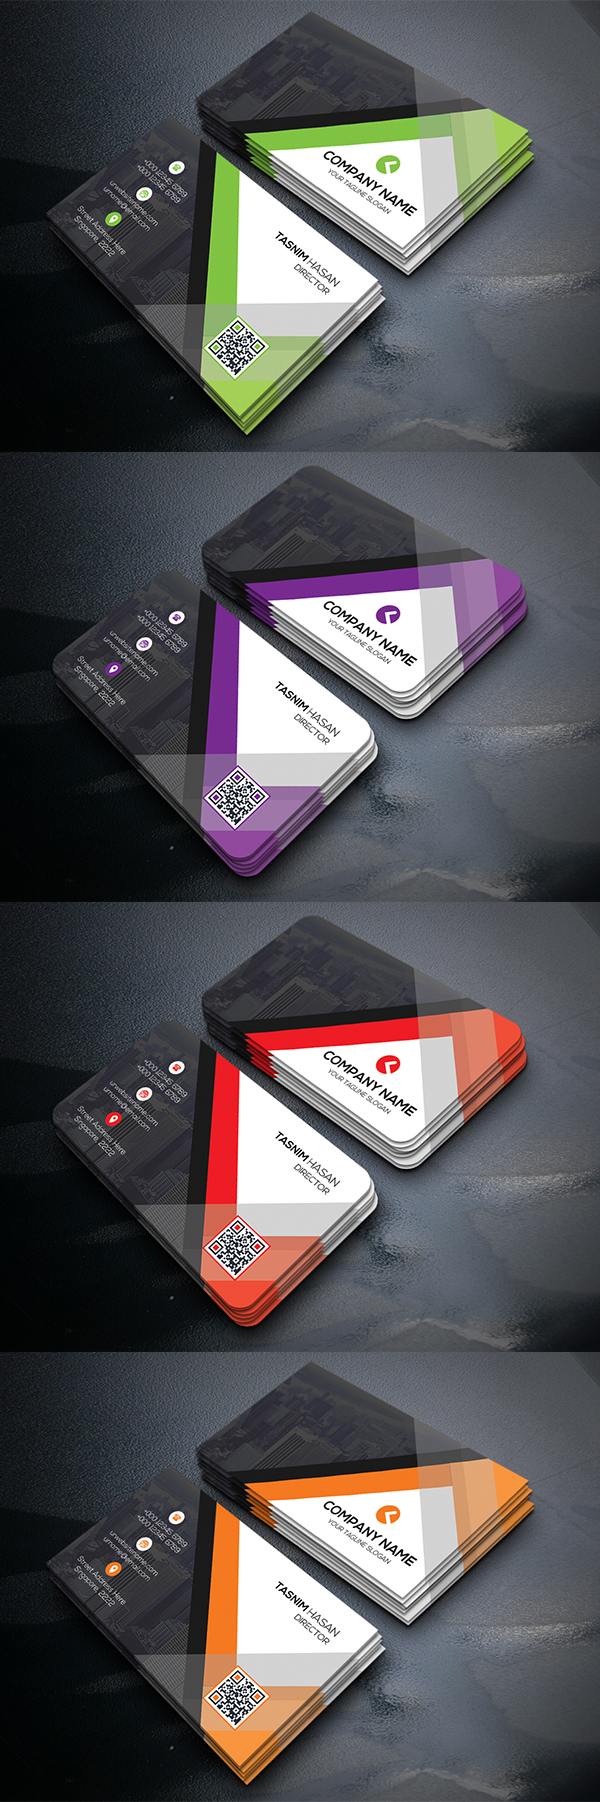 21 Business Card Design